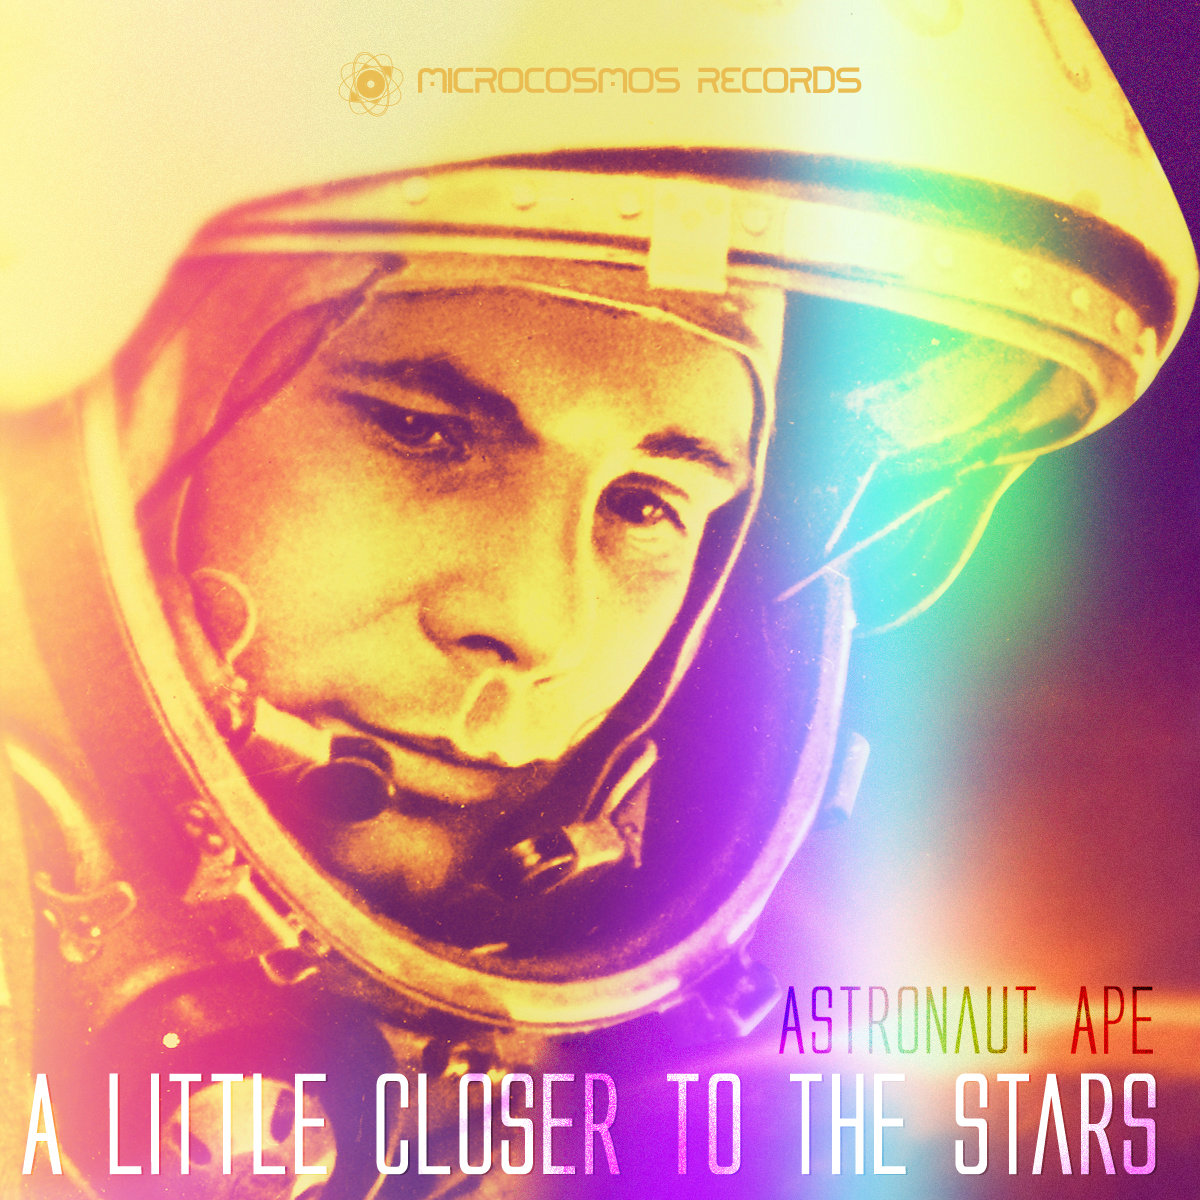 Astronaut Ape - A Little Closer To The Stars (artwork)